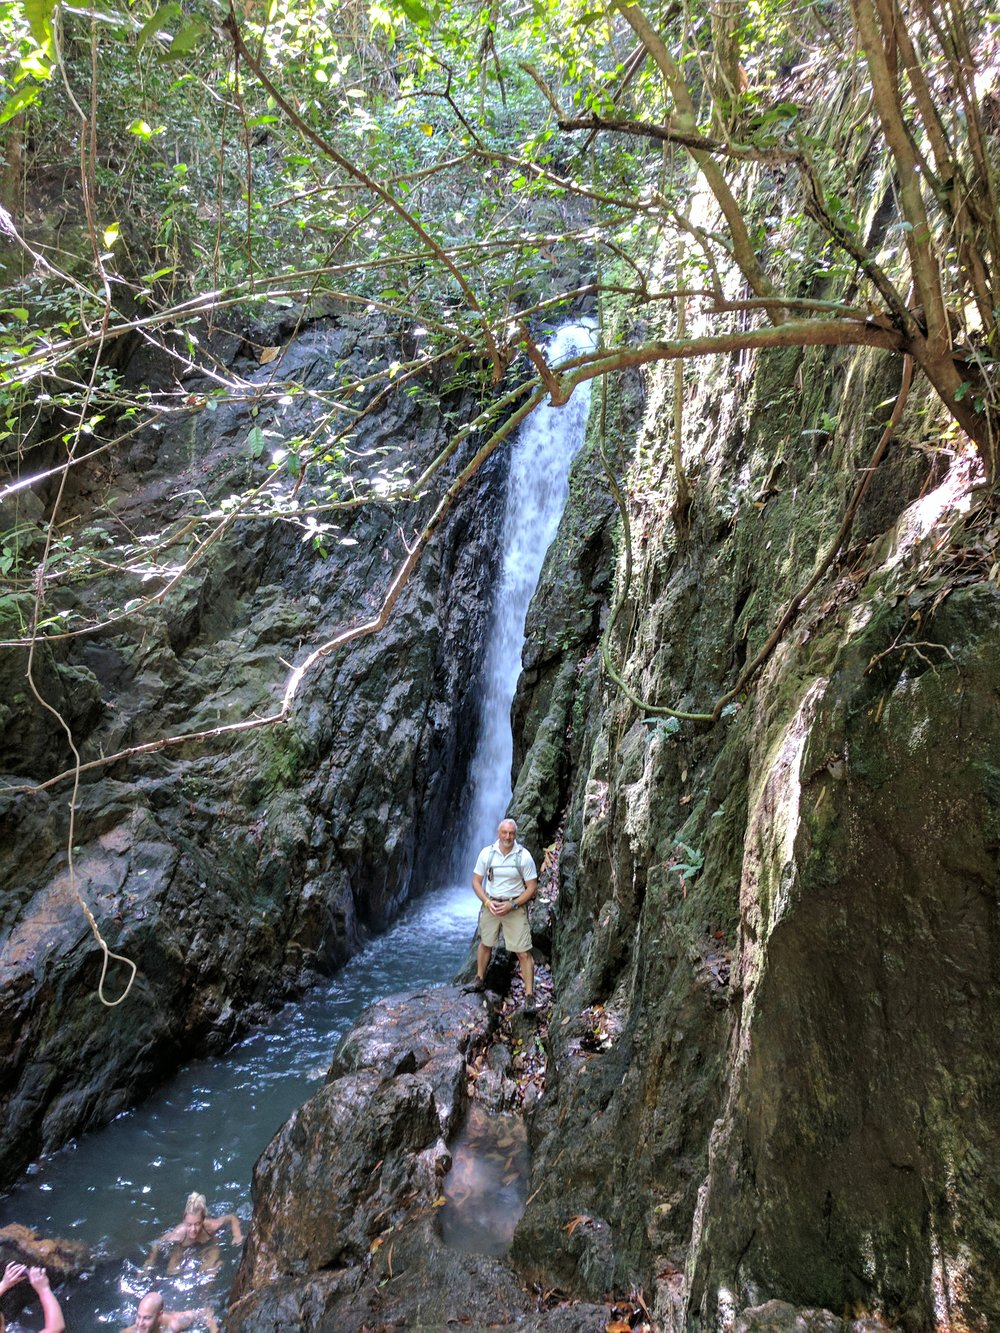 Our last day in Phuket, we strayed from the typical tourist path, as we so often do, and hiked up to a local waterfall.